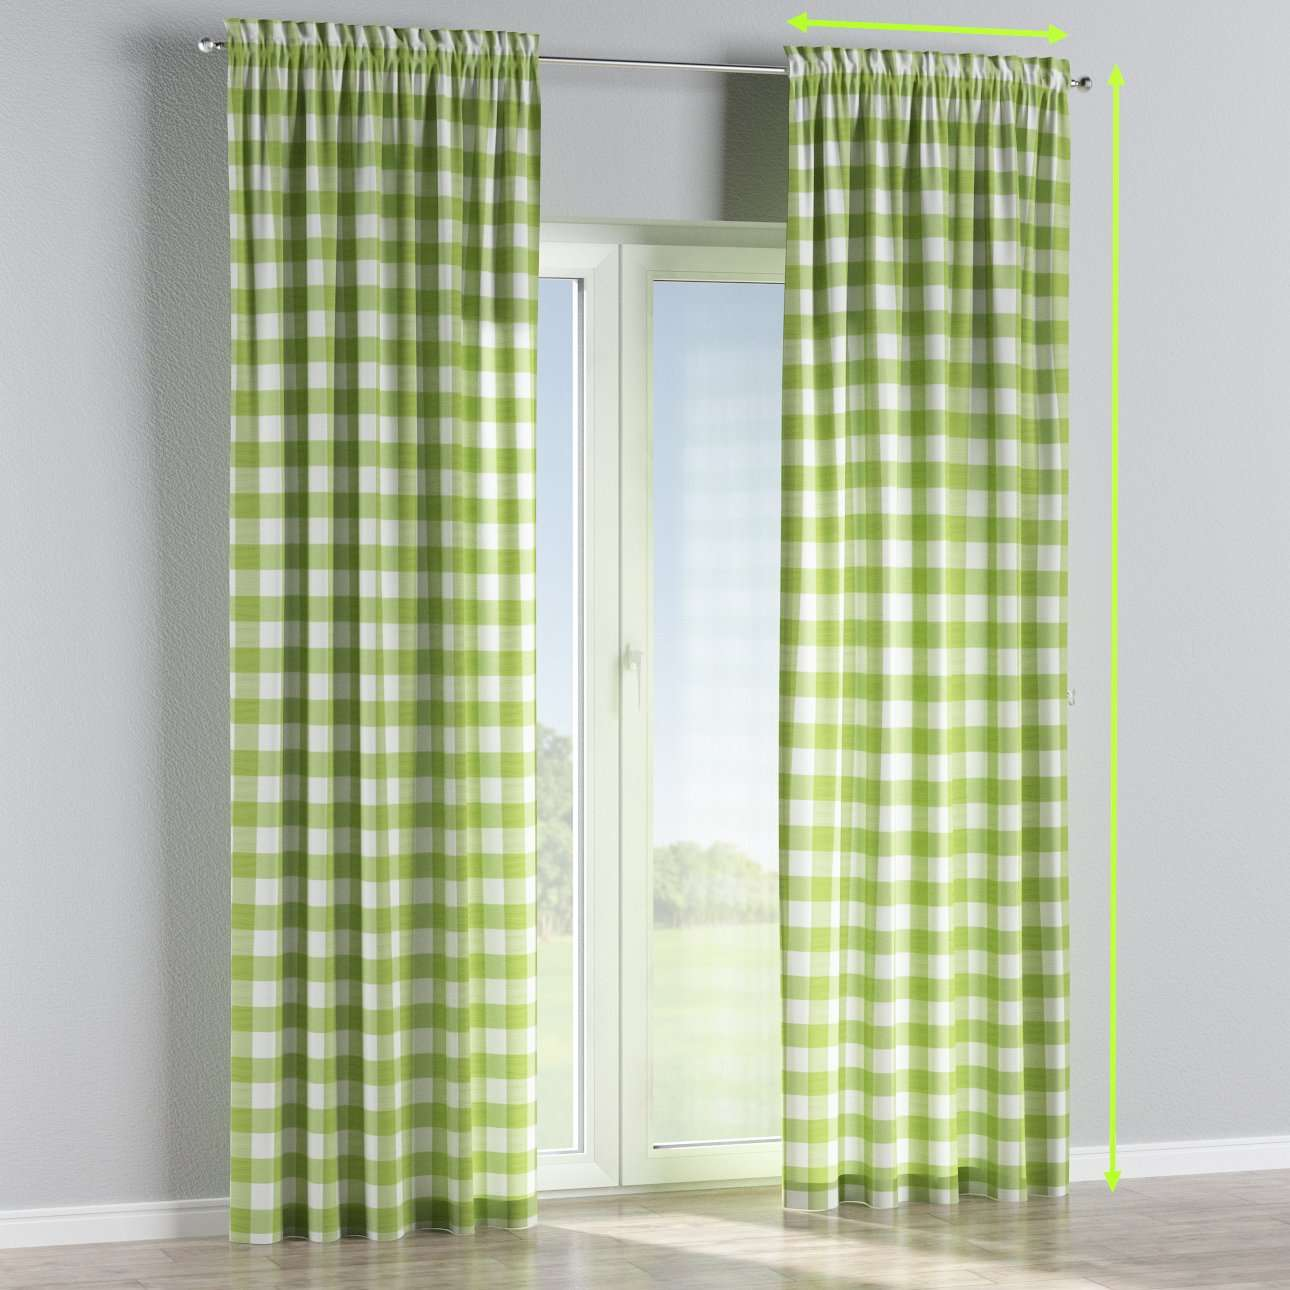 Slot and frill curtains in collection Quadro, fabric: 136-36